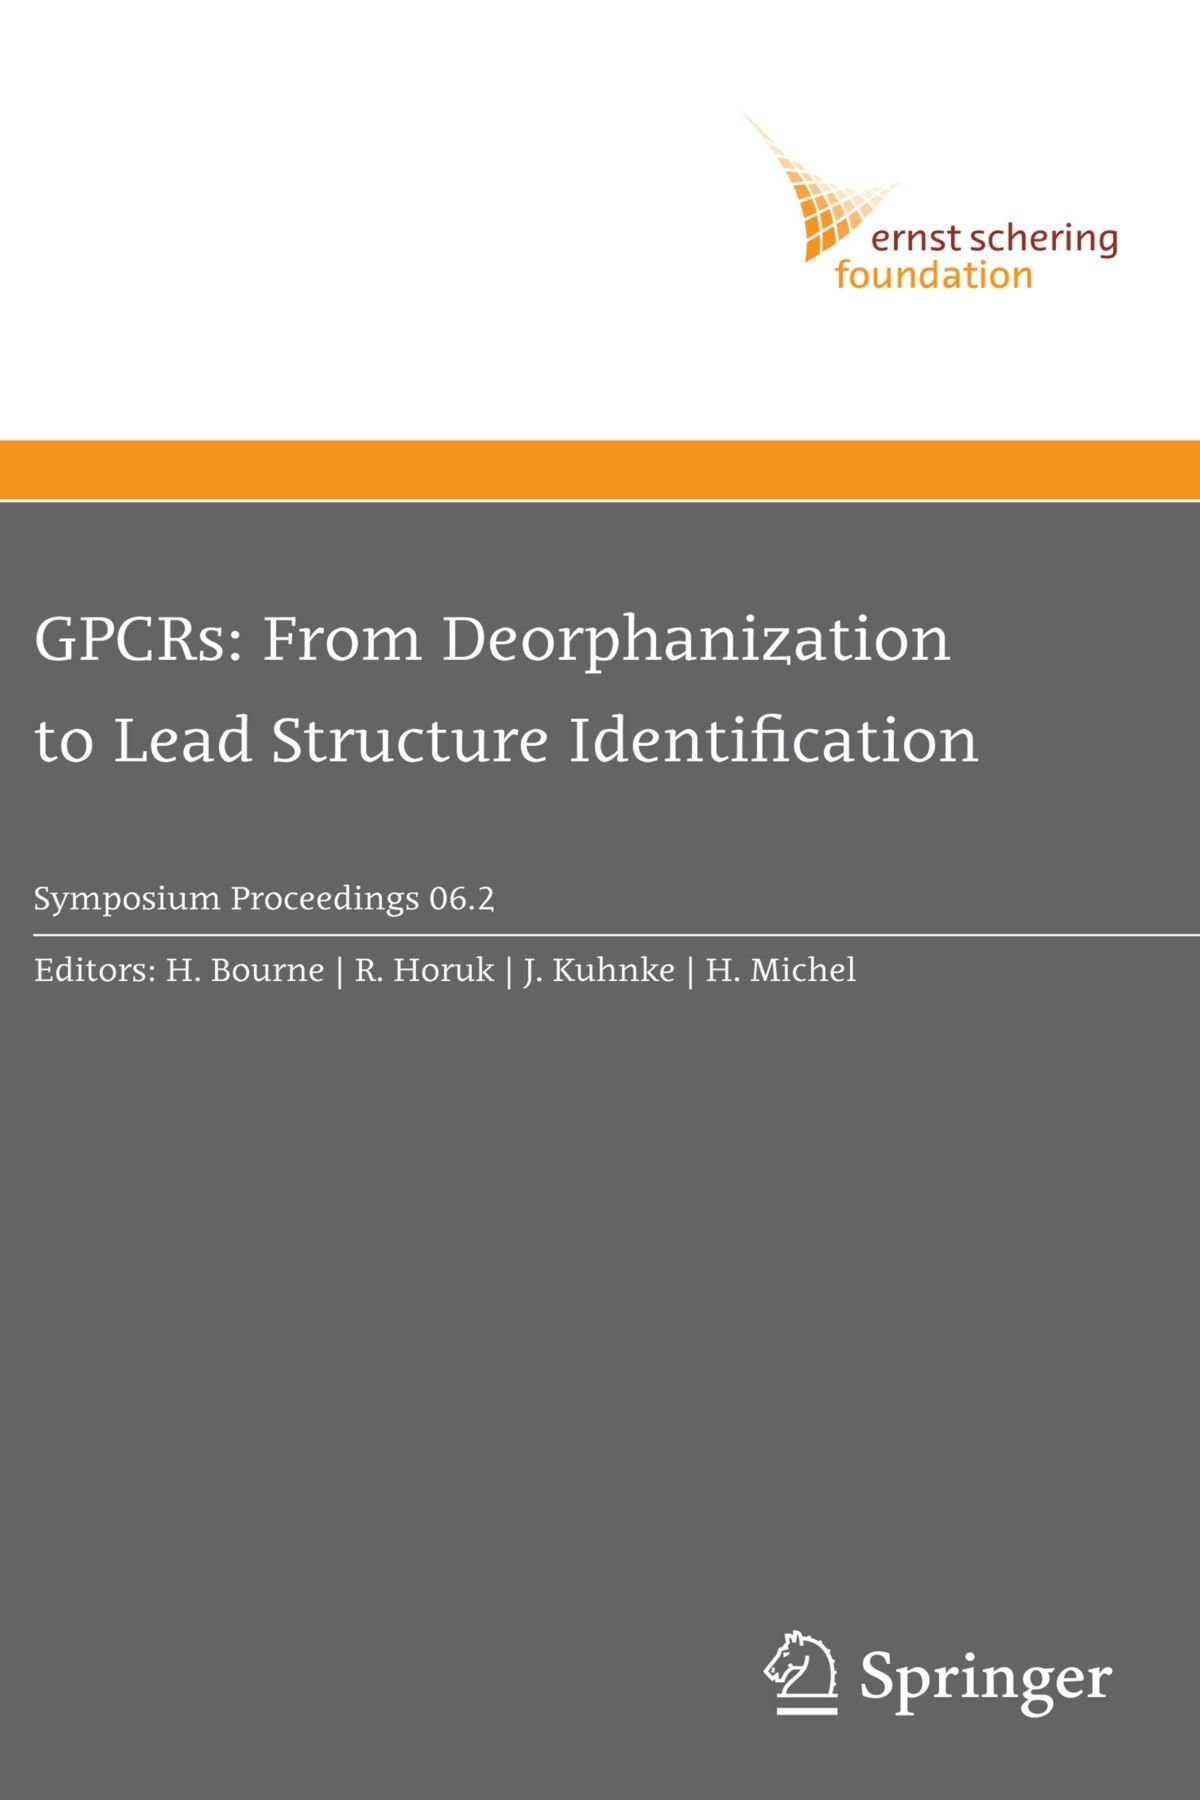 GPCRs: From Deorphanization to Lead Structure Identification (Ernst Schering Foundation Symposium Proceedings)